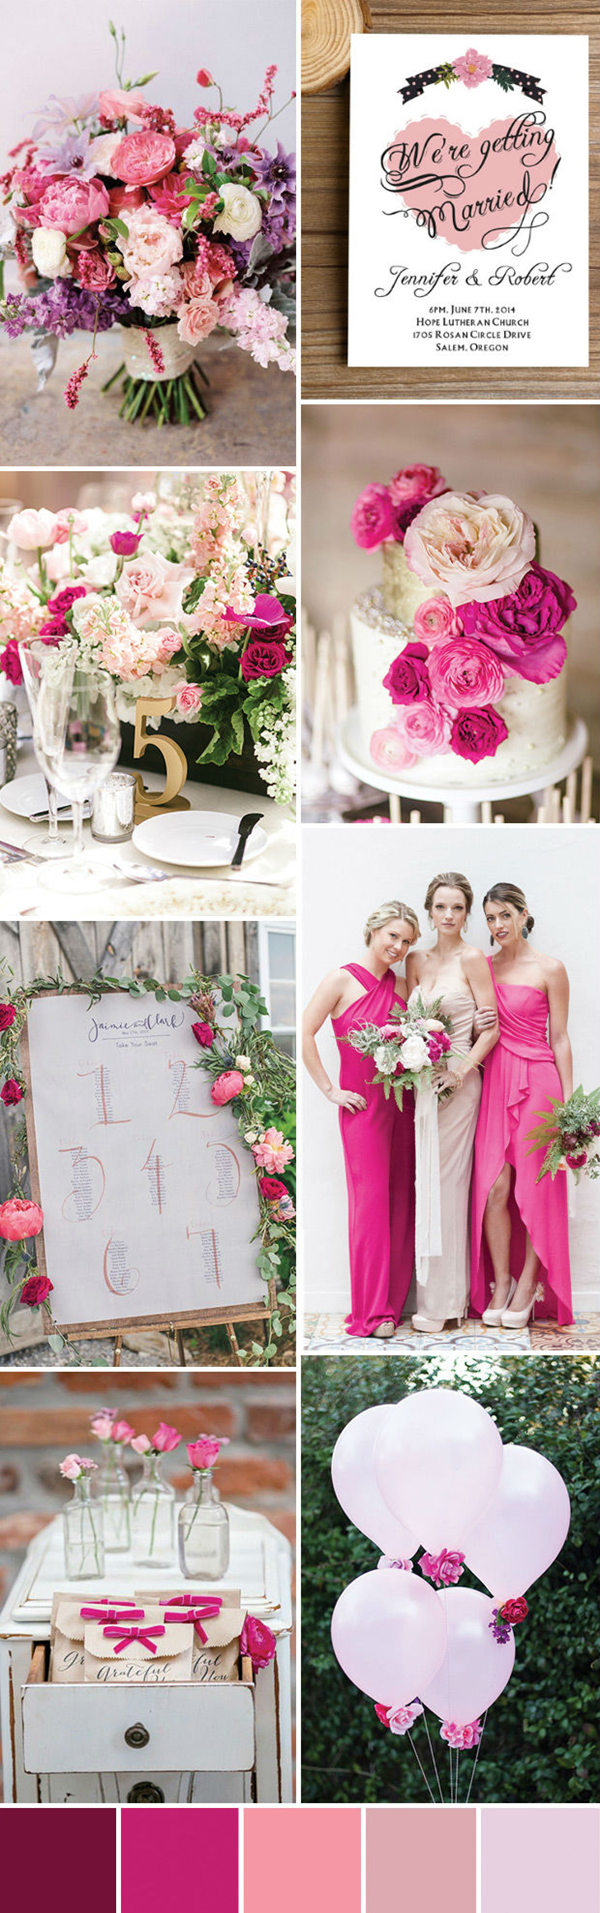 seven wonderful wedding color ideas in shades of pink ...